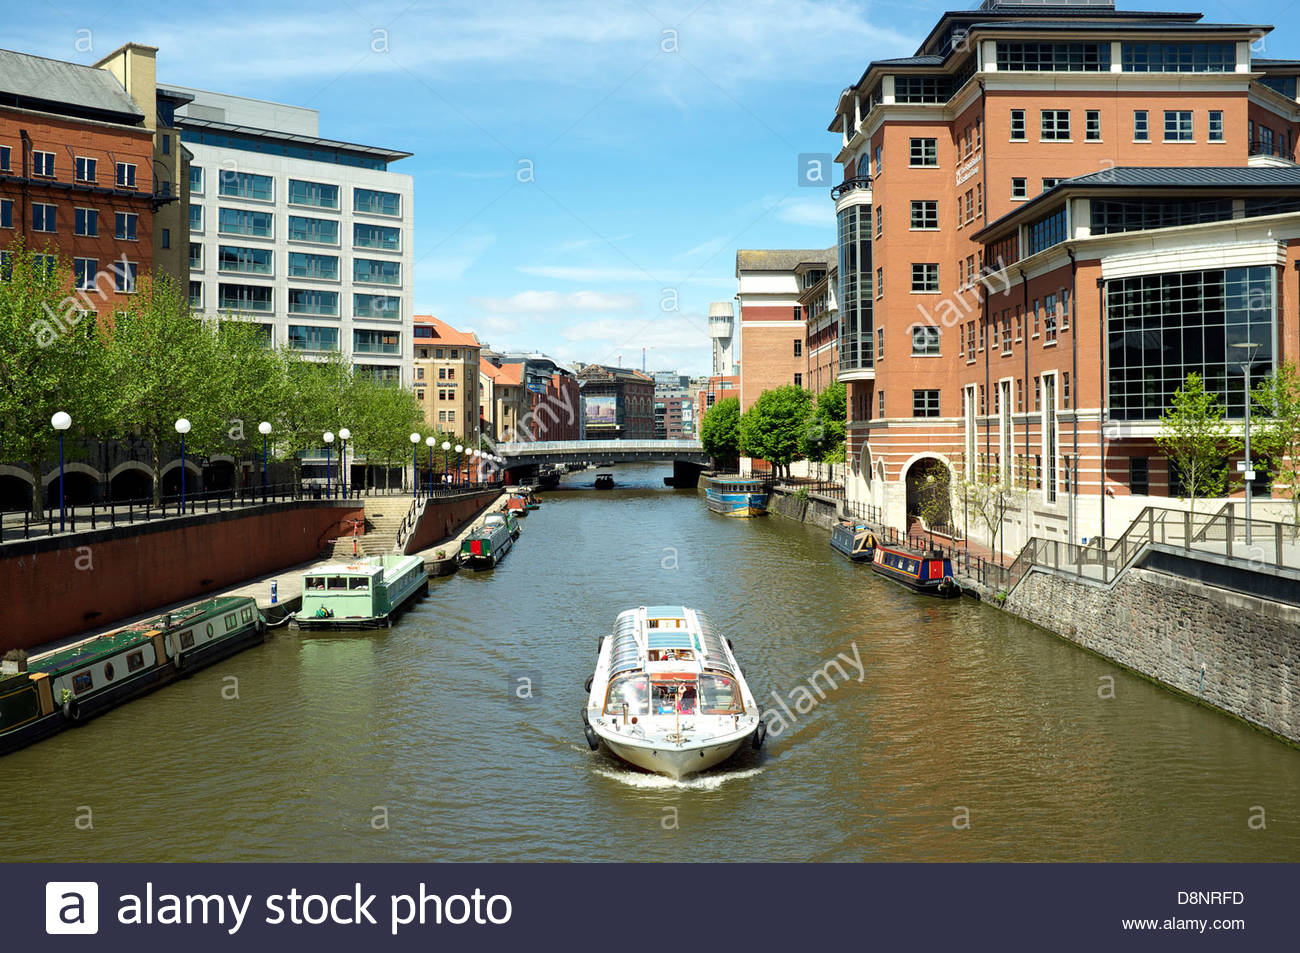 A view of the business area of Temple Quay and the River Avon (and the Floating Harbour) in Bristol, UK. - Stock Image